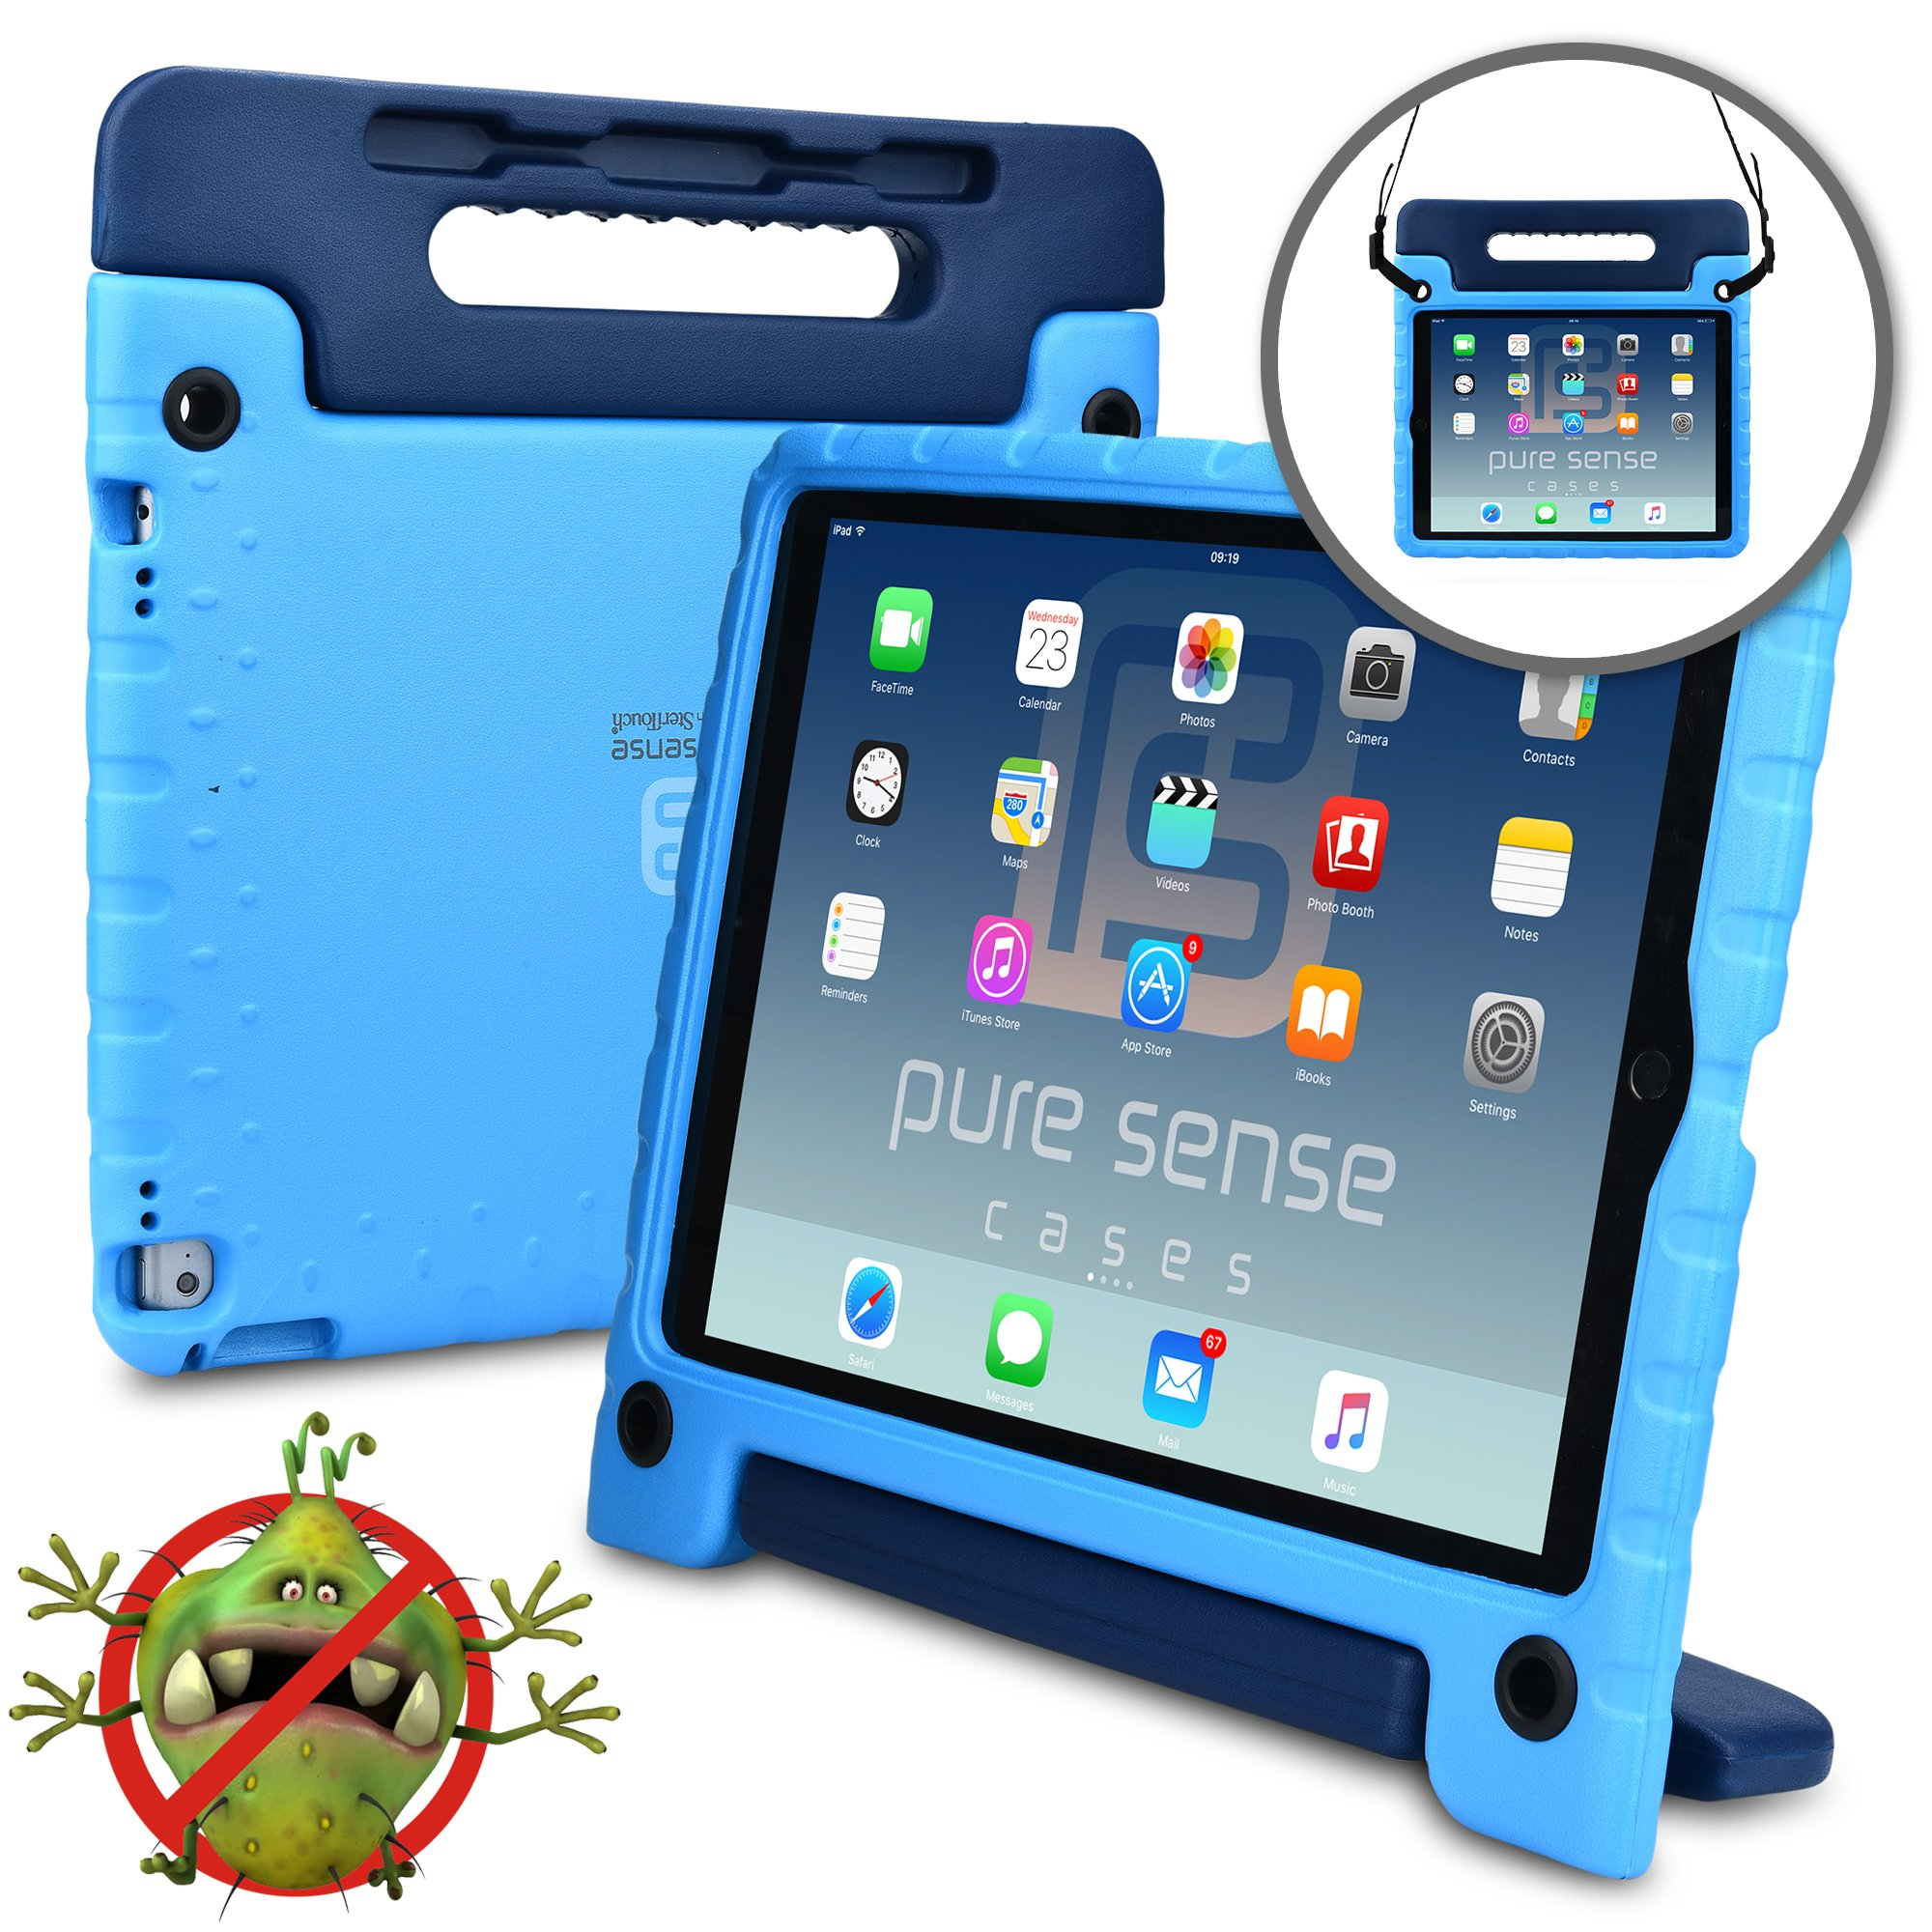 PURE SENSE BUDDY Kids Case compatible with Apple iPad Pro 12.9 | Anti Microbial Heavy Duty Shock Proof Cover for Kids | Protective Case Boys Girls | Shoulder Strap, Handle & Stand | A1584 A1652 (Blue)